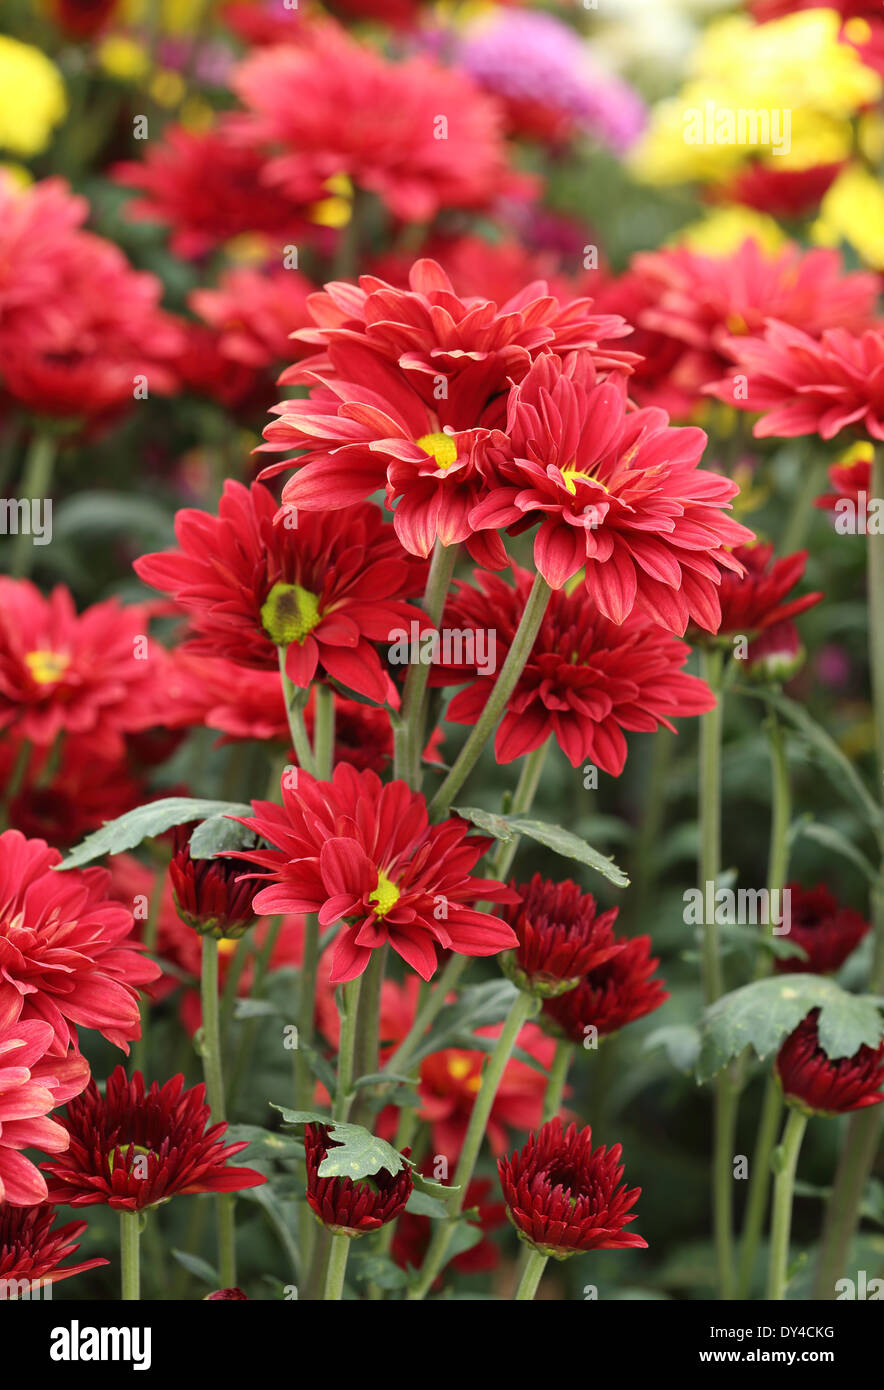 red chrysanthemums flowers in the garden Stock Photo  68324580   Alamy red chrysanthemums flowers in the garden